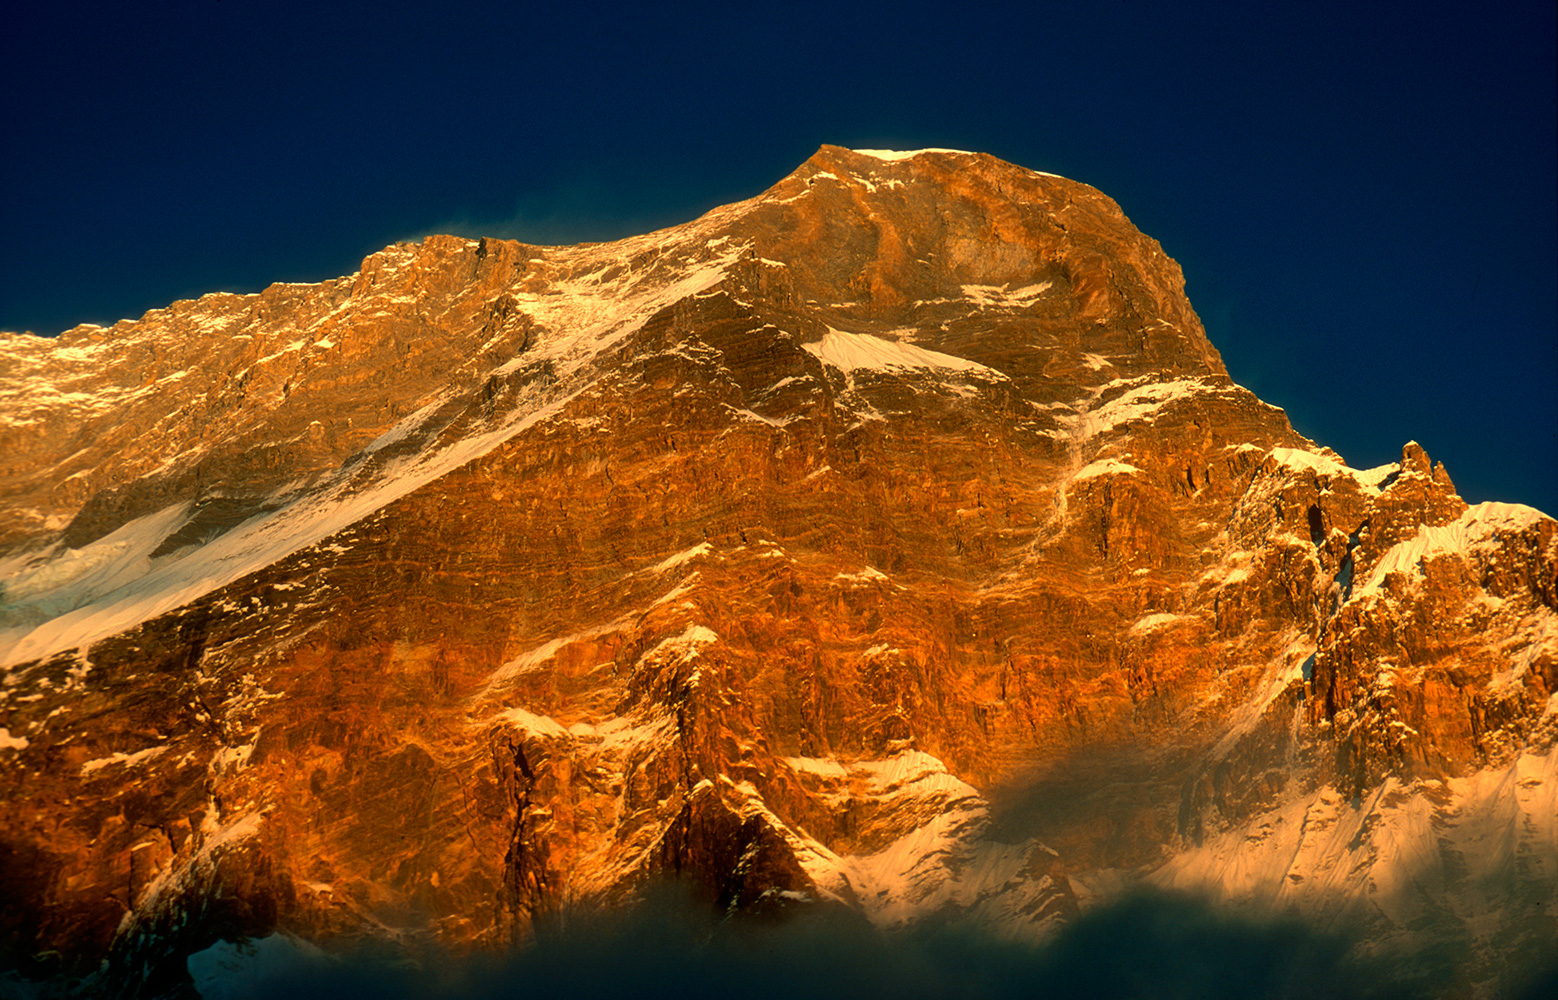 Otherwise known as the Puchhar Wall, this is one of the greatest precipices on earth. Puchhar, or Italian Base Camp, is at an altitude of 3500m. The summit of Dhaulagiri I is almost 5000m  - three vertical miles - immediately above.Nikon FM2, 105mm, Fuji Velvia